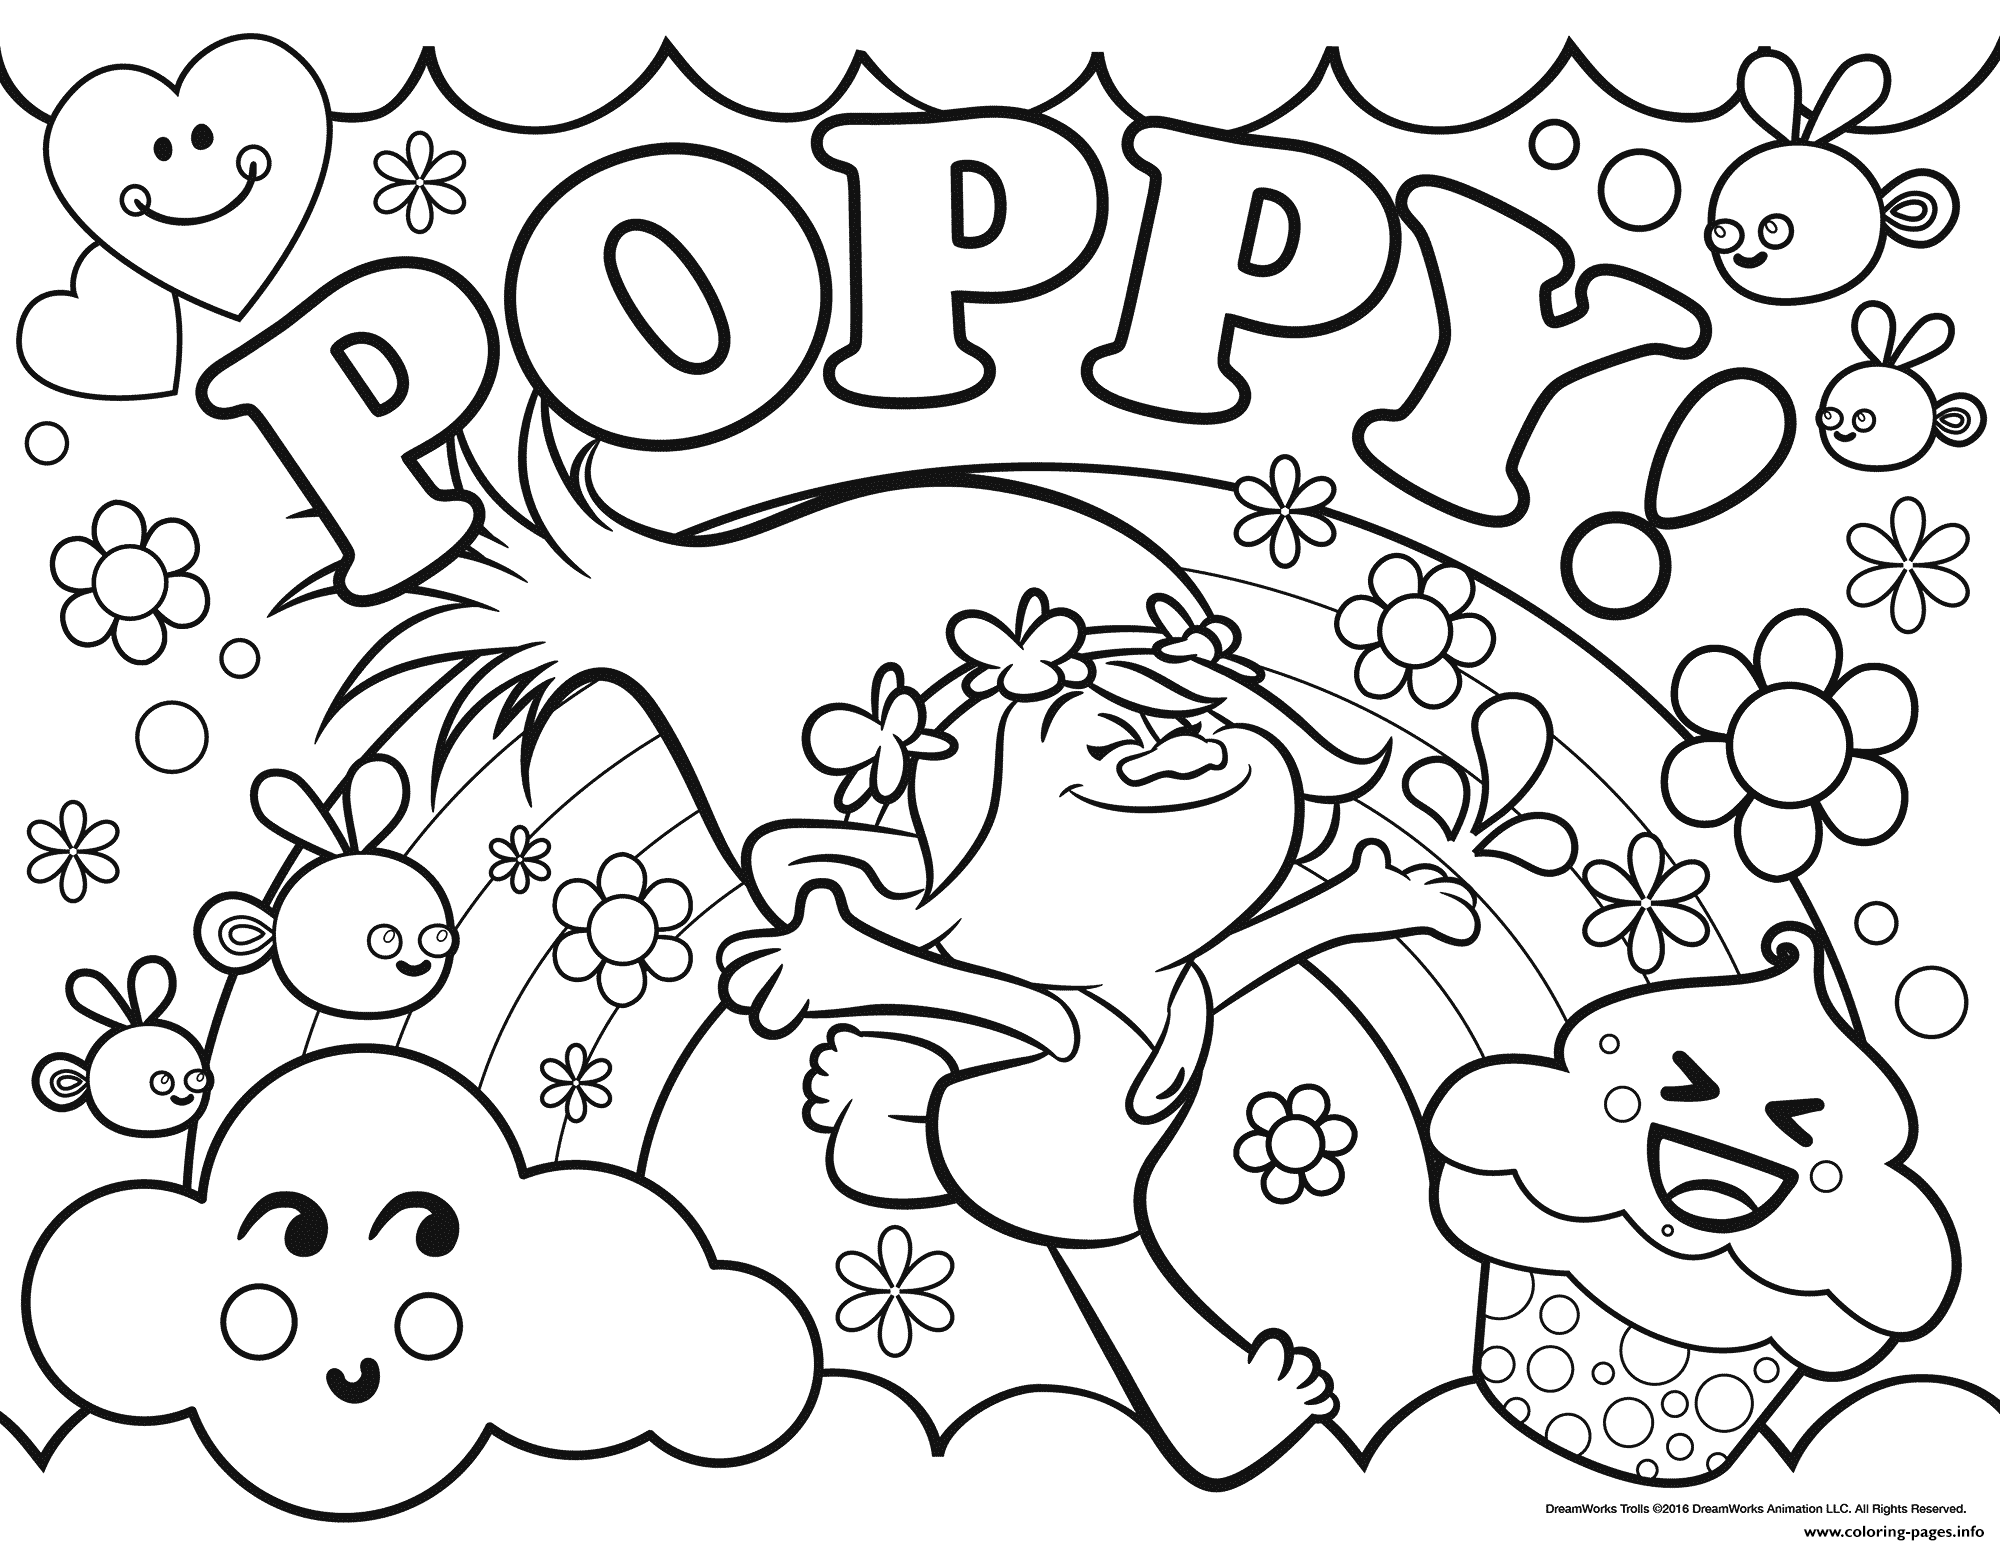 coloring pages of trolls Trolls Poppy Coloring Pages Printable coloring pages of trolls